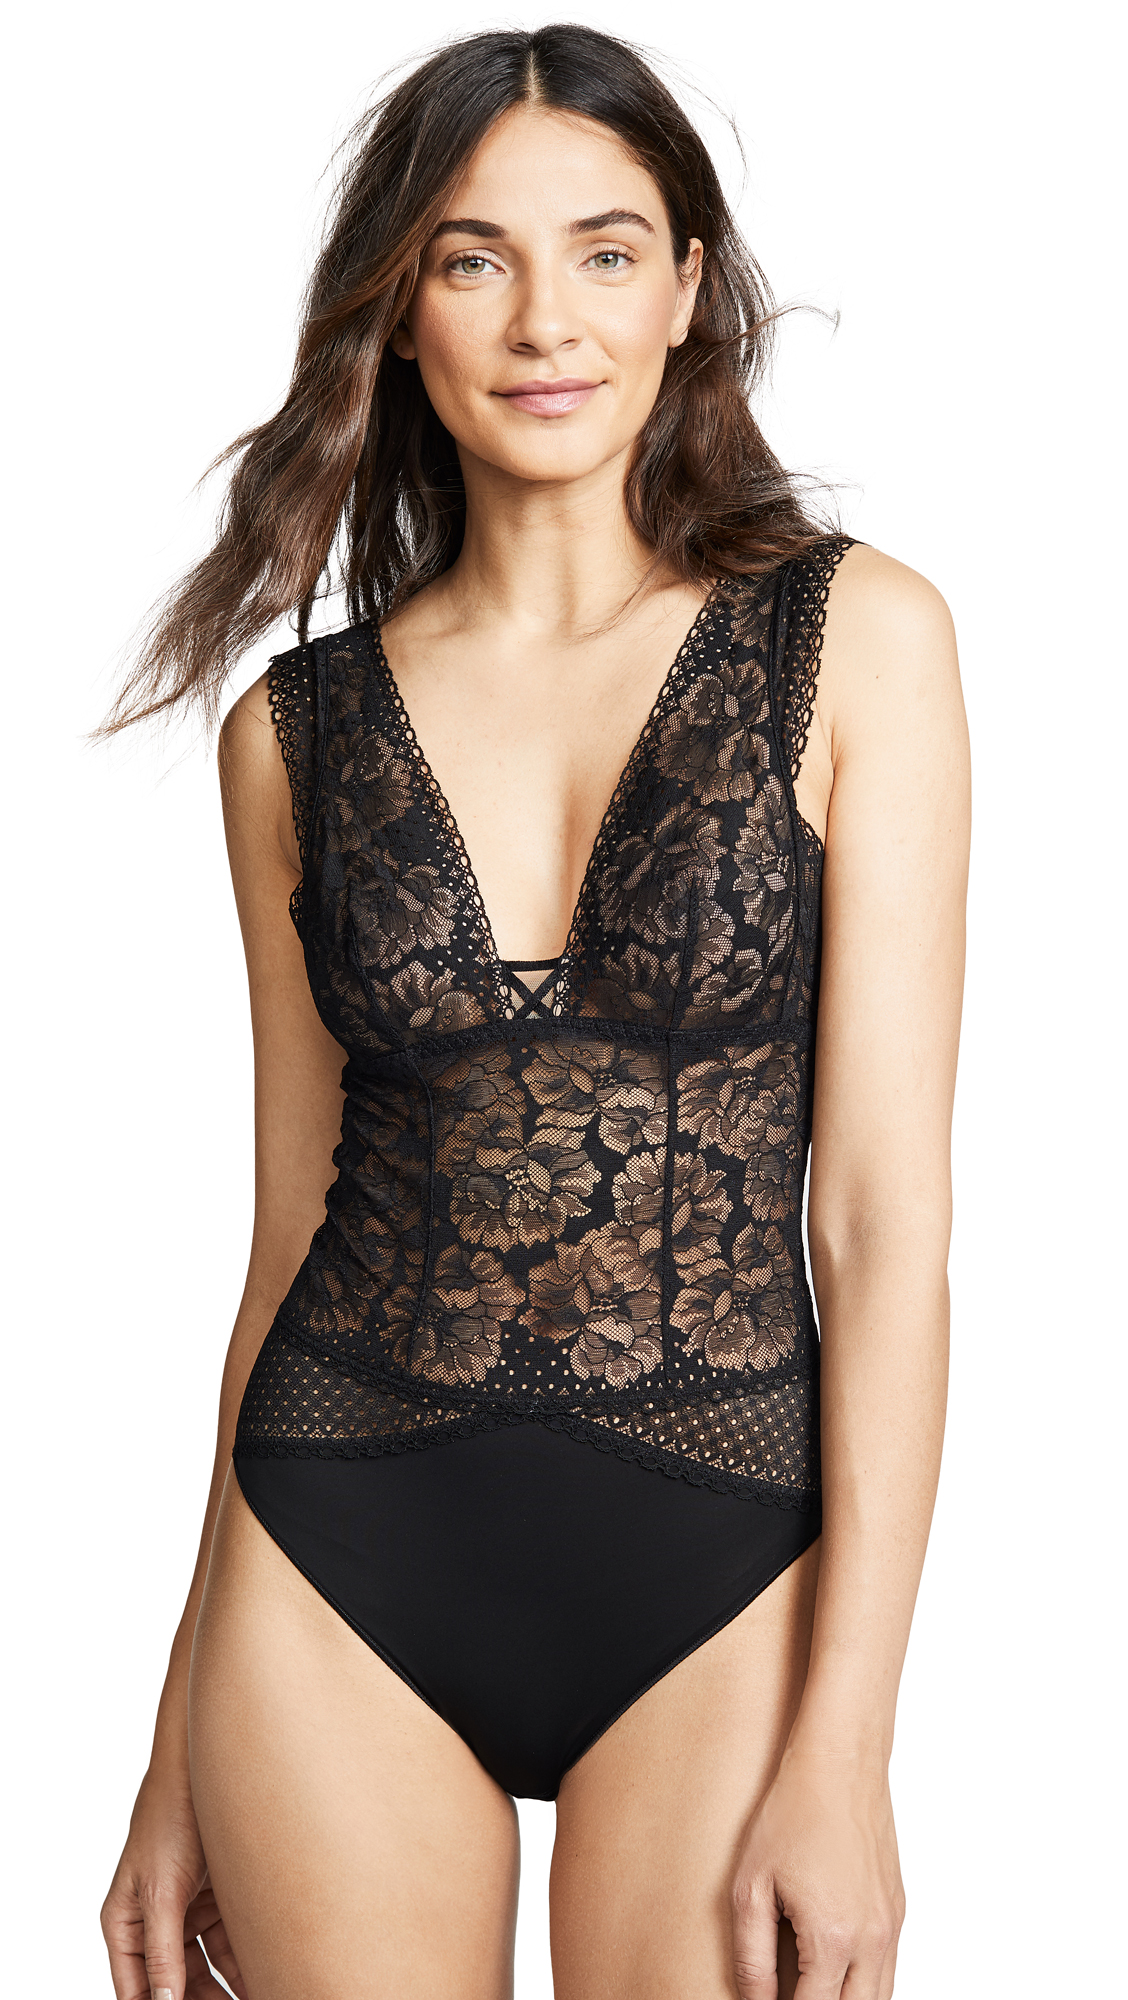 MAISON LEJABY DOT FLOWER BODYSUIT